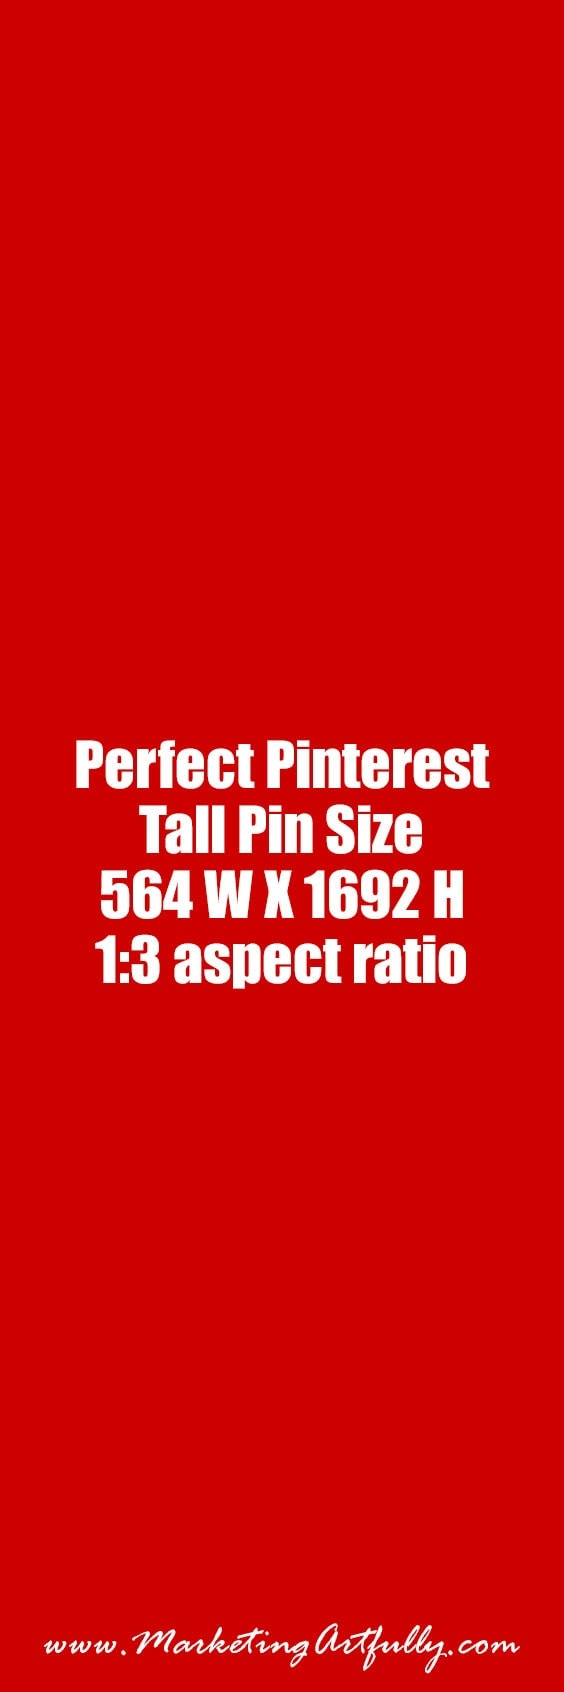 The Perfect Pinterest Tall Pin Size | Check out all my Pinterest pin size research... Pinterest Marketing - What Size Should Your Banners Be? (Lots of Examples)